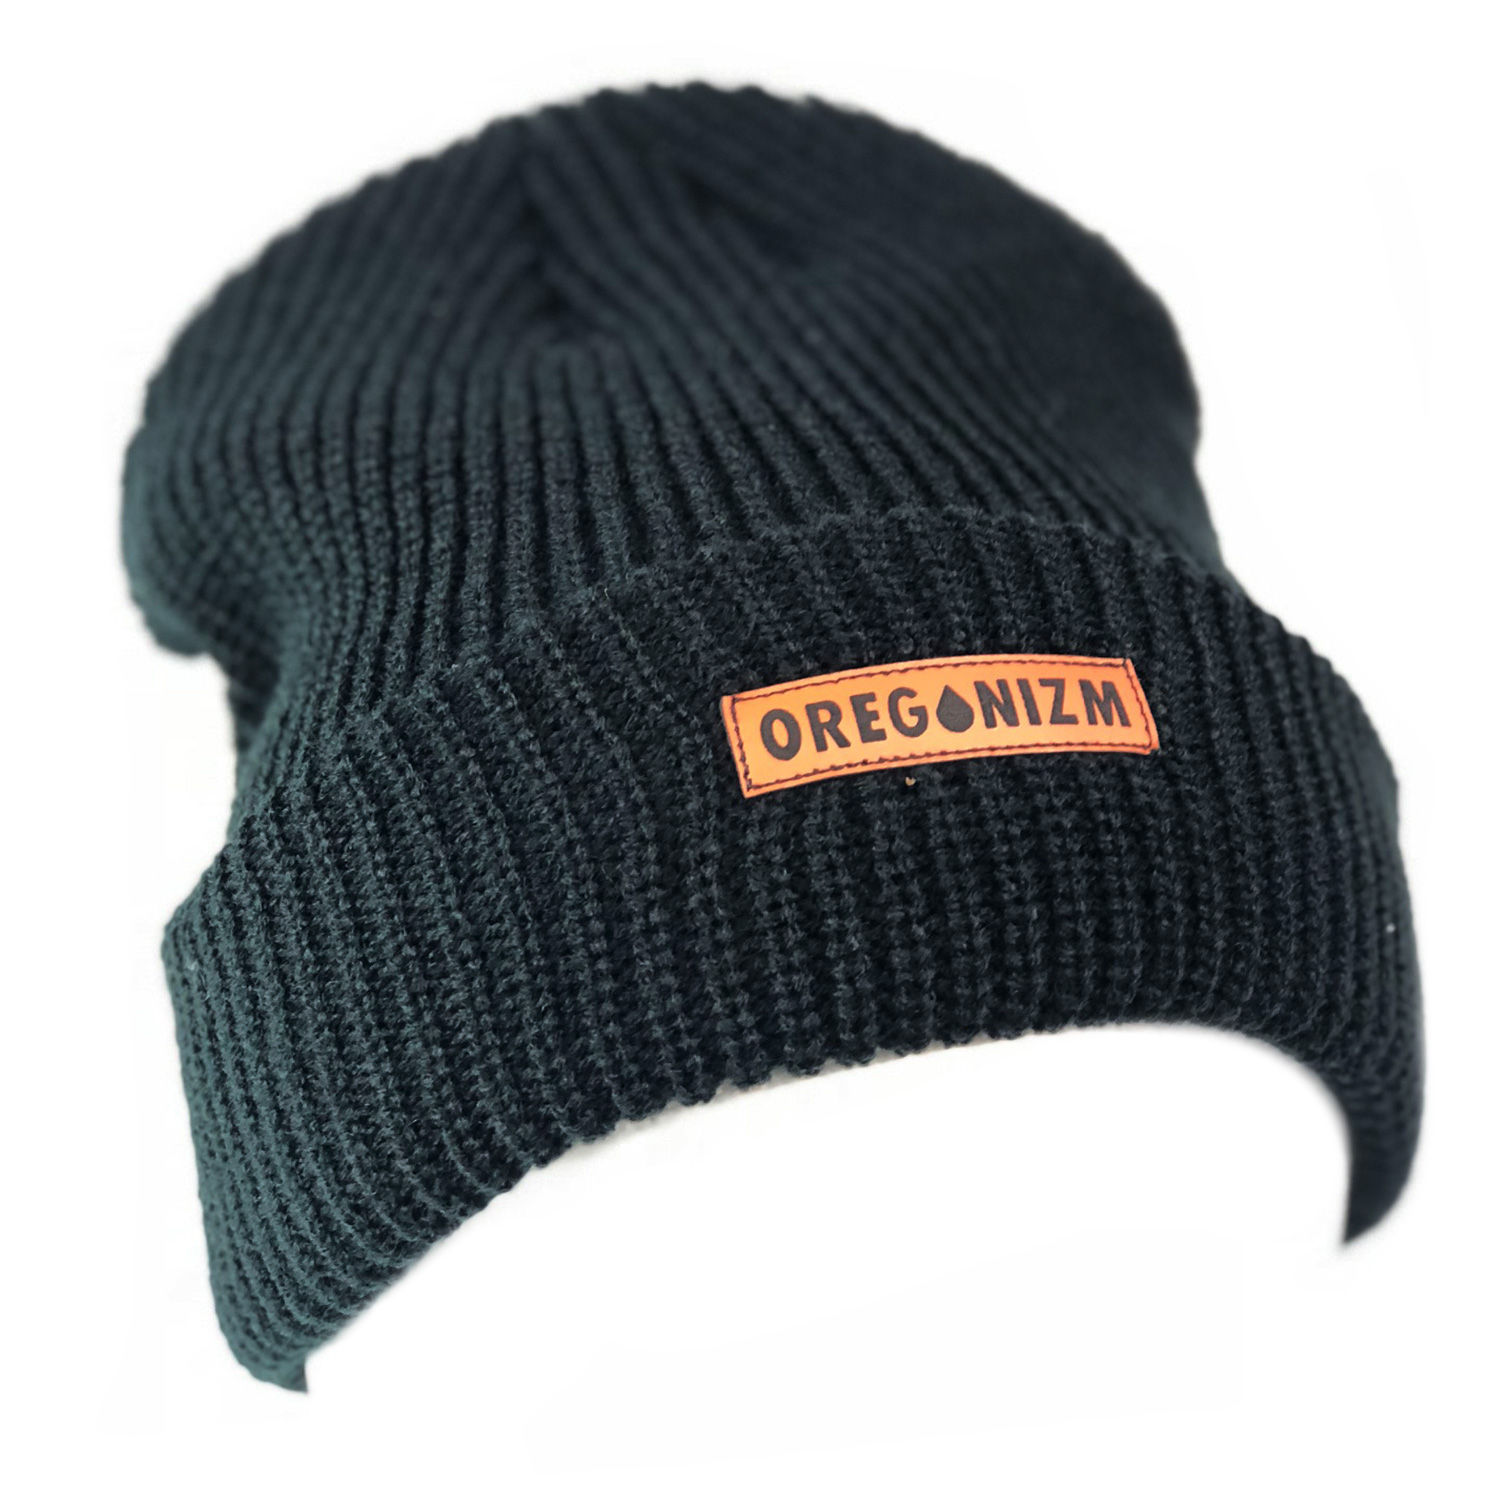 2019_02.05_Beanies_PrimaryLeather_Black_Back